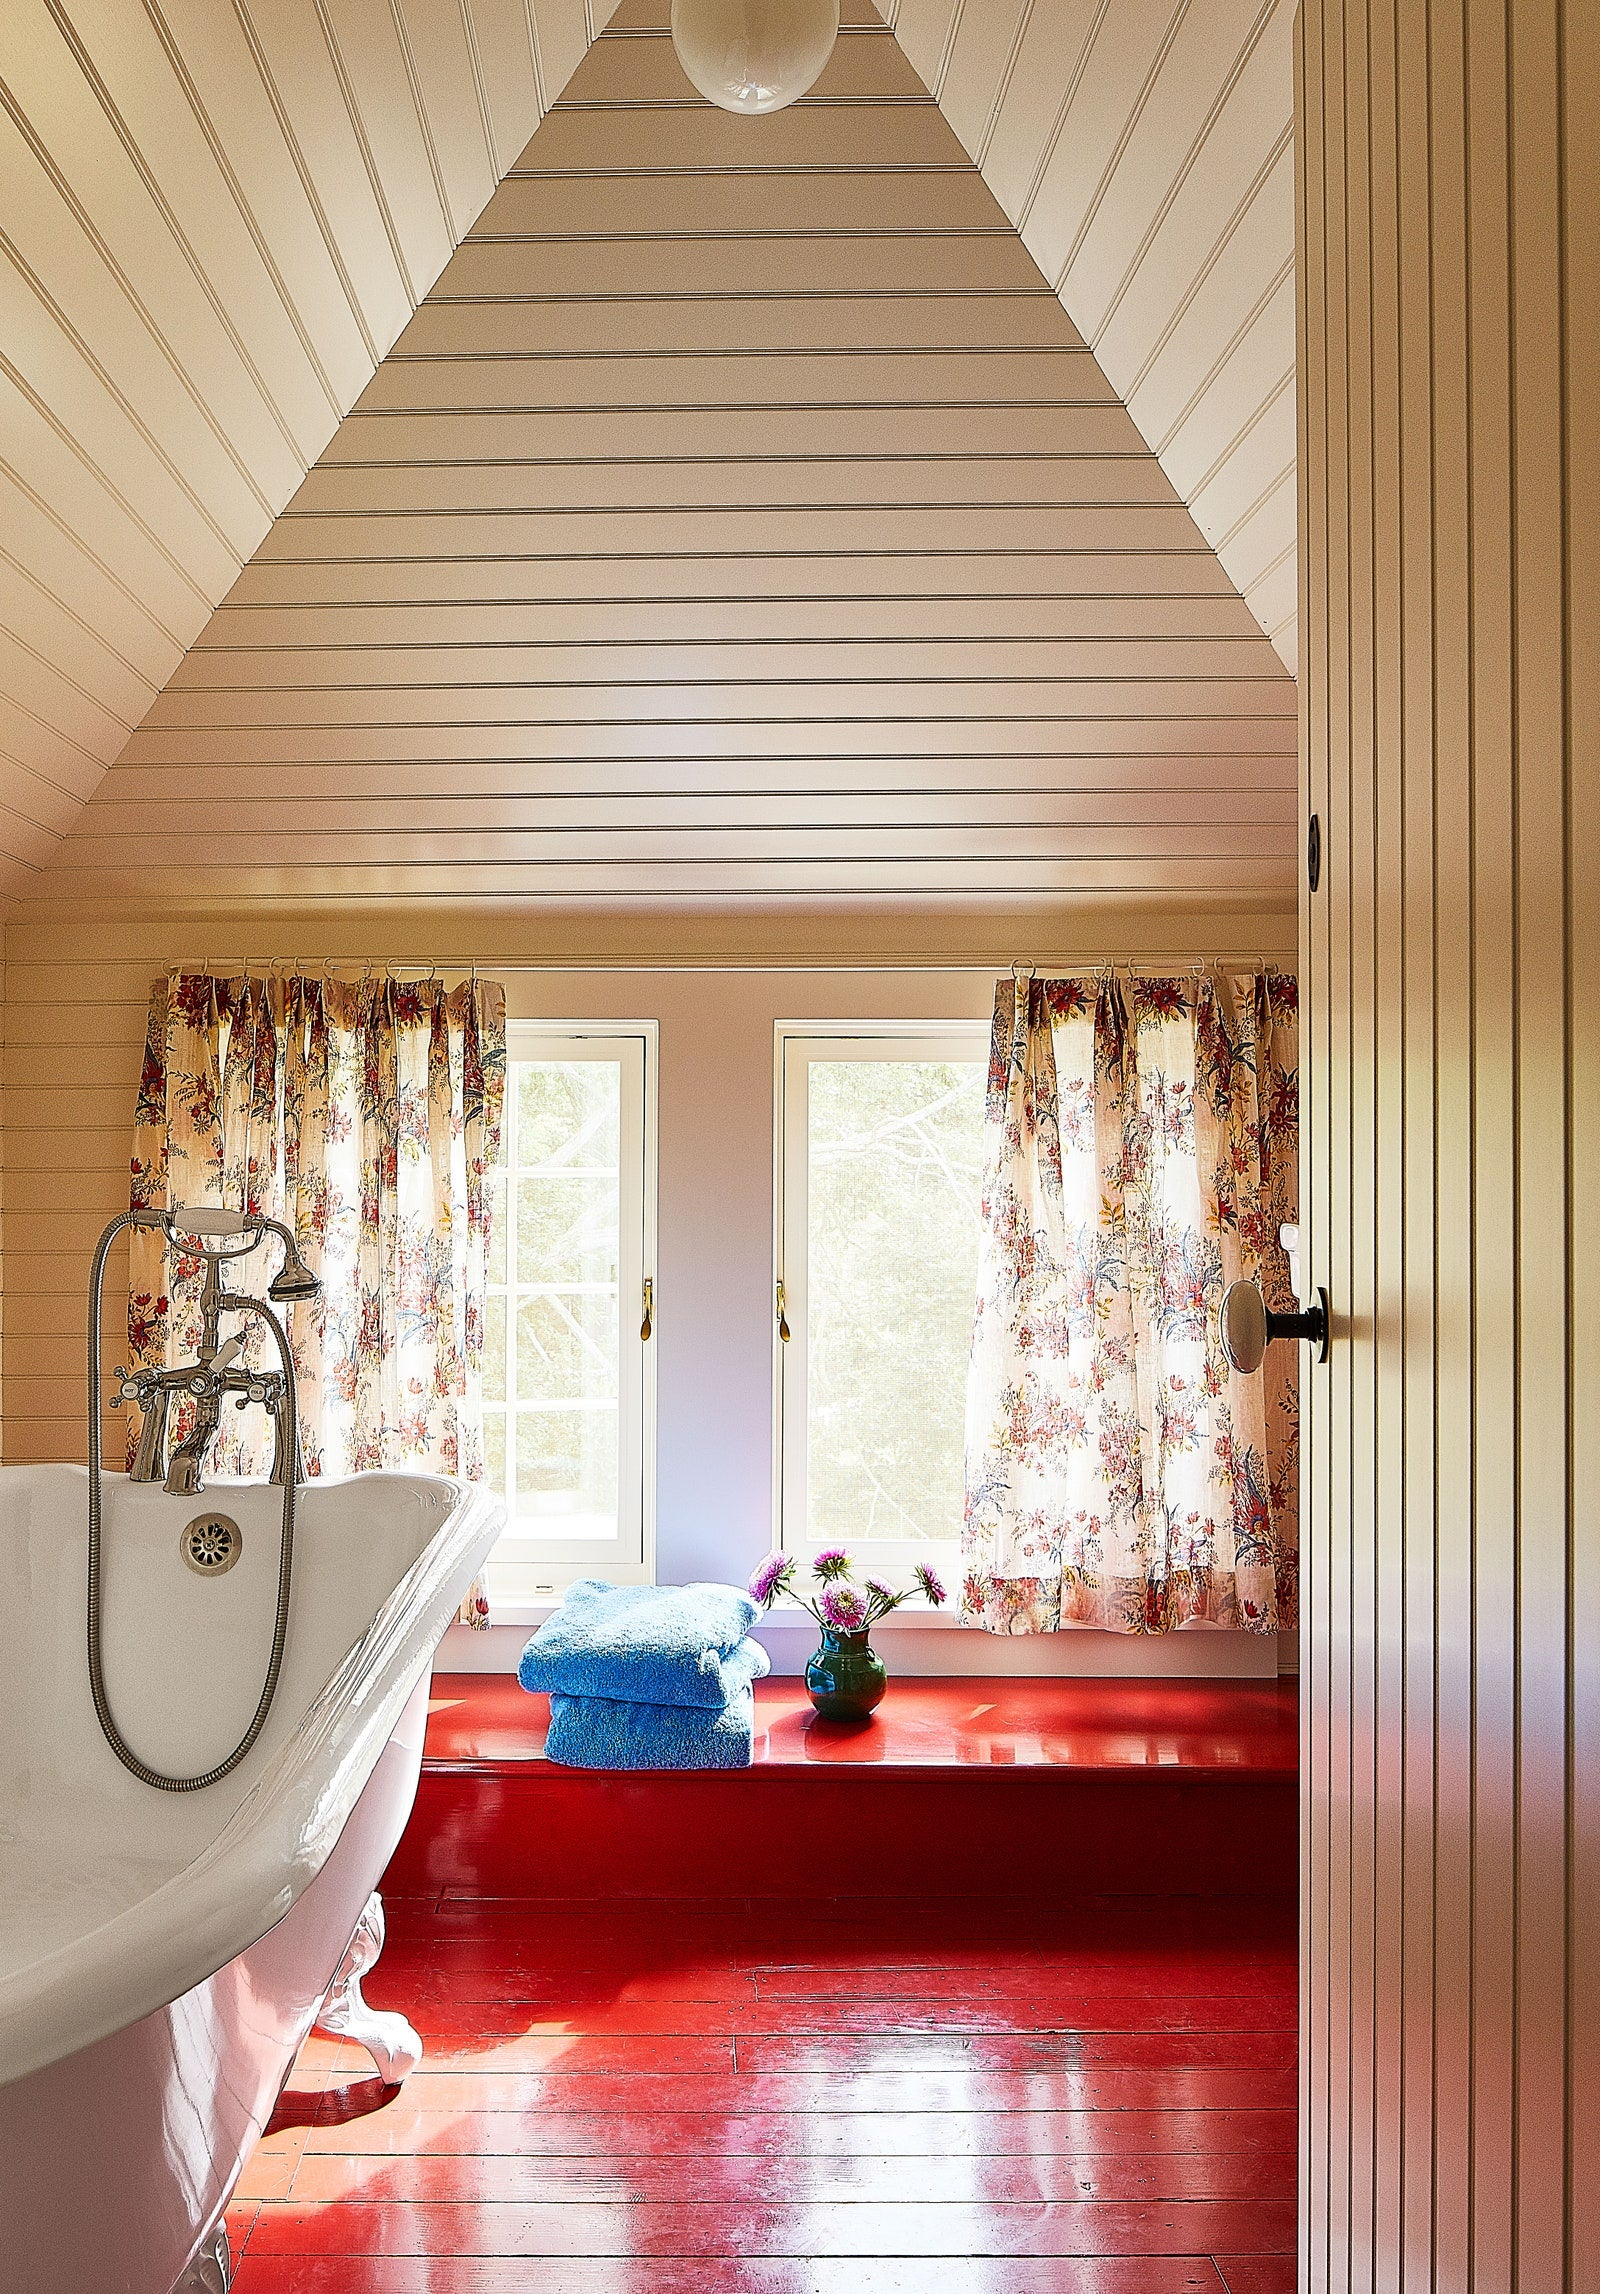 Country bathroom with red painted floors